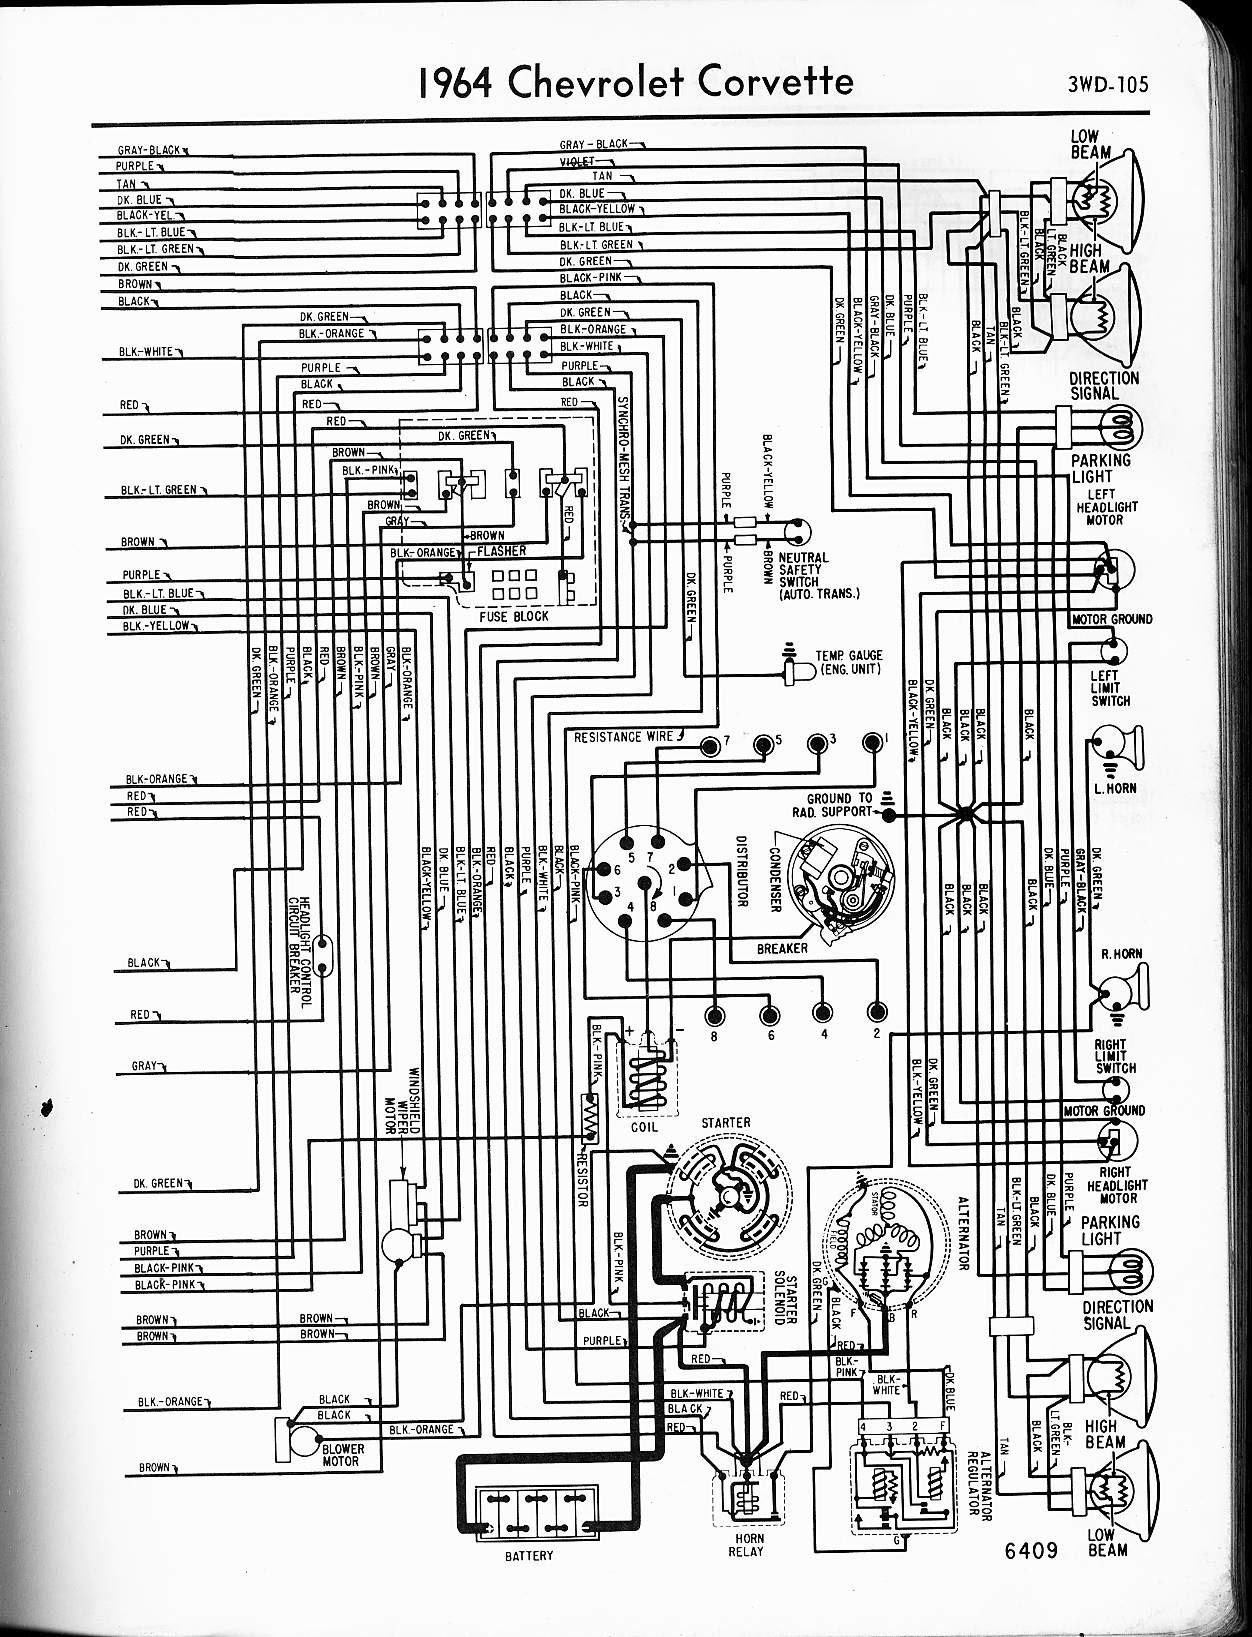 1964 Corvette Fuse Box Wiring Wiring Diagram Window B Window B Zaafran It